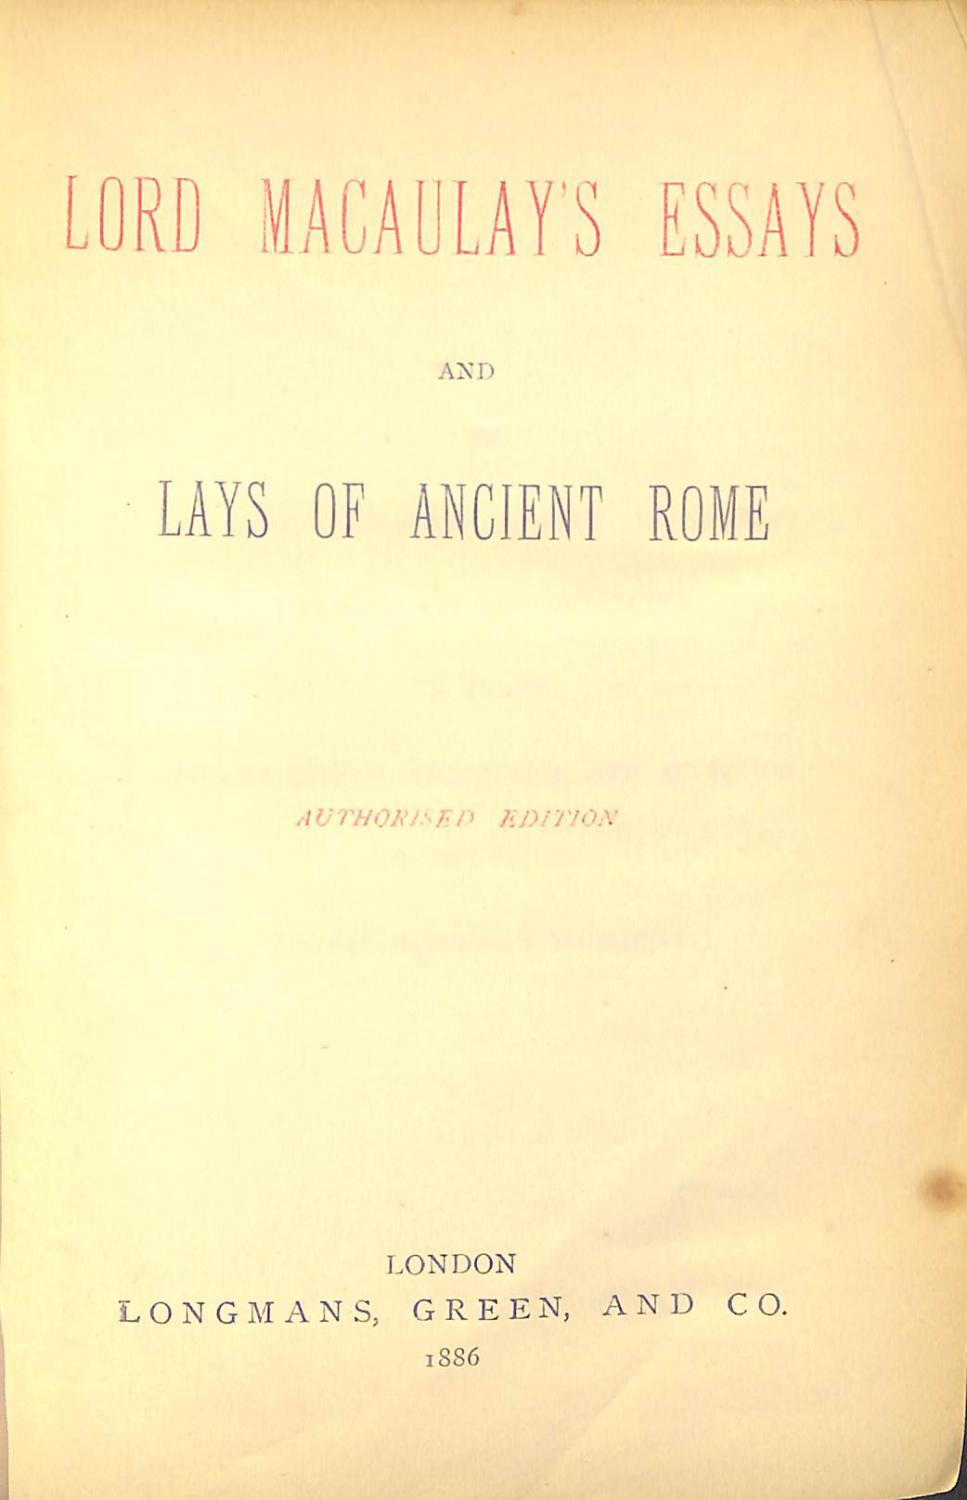 macaulays essays and lays of ancient rome by lord macaulay abebooks